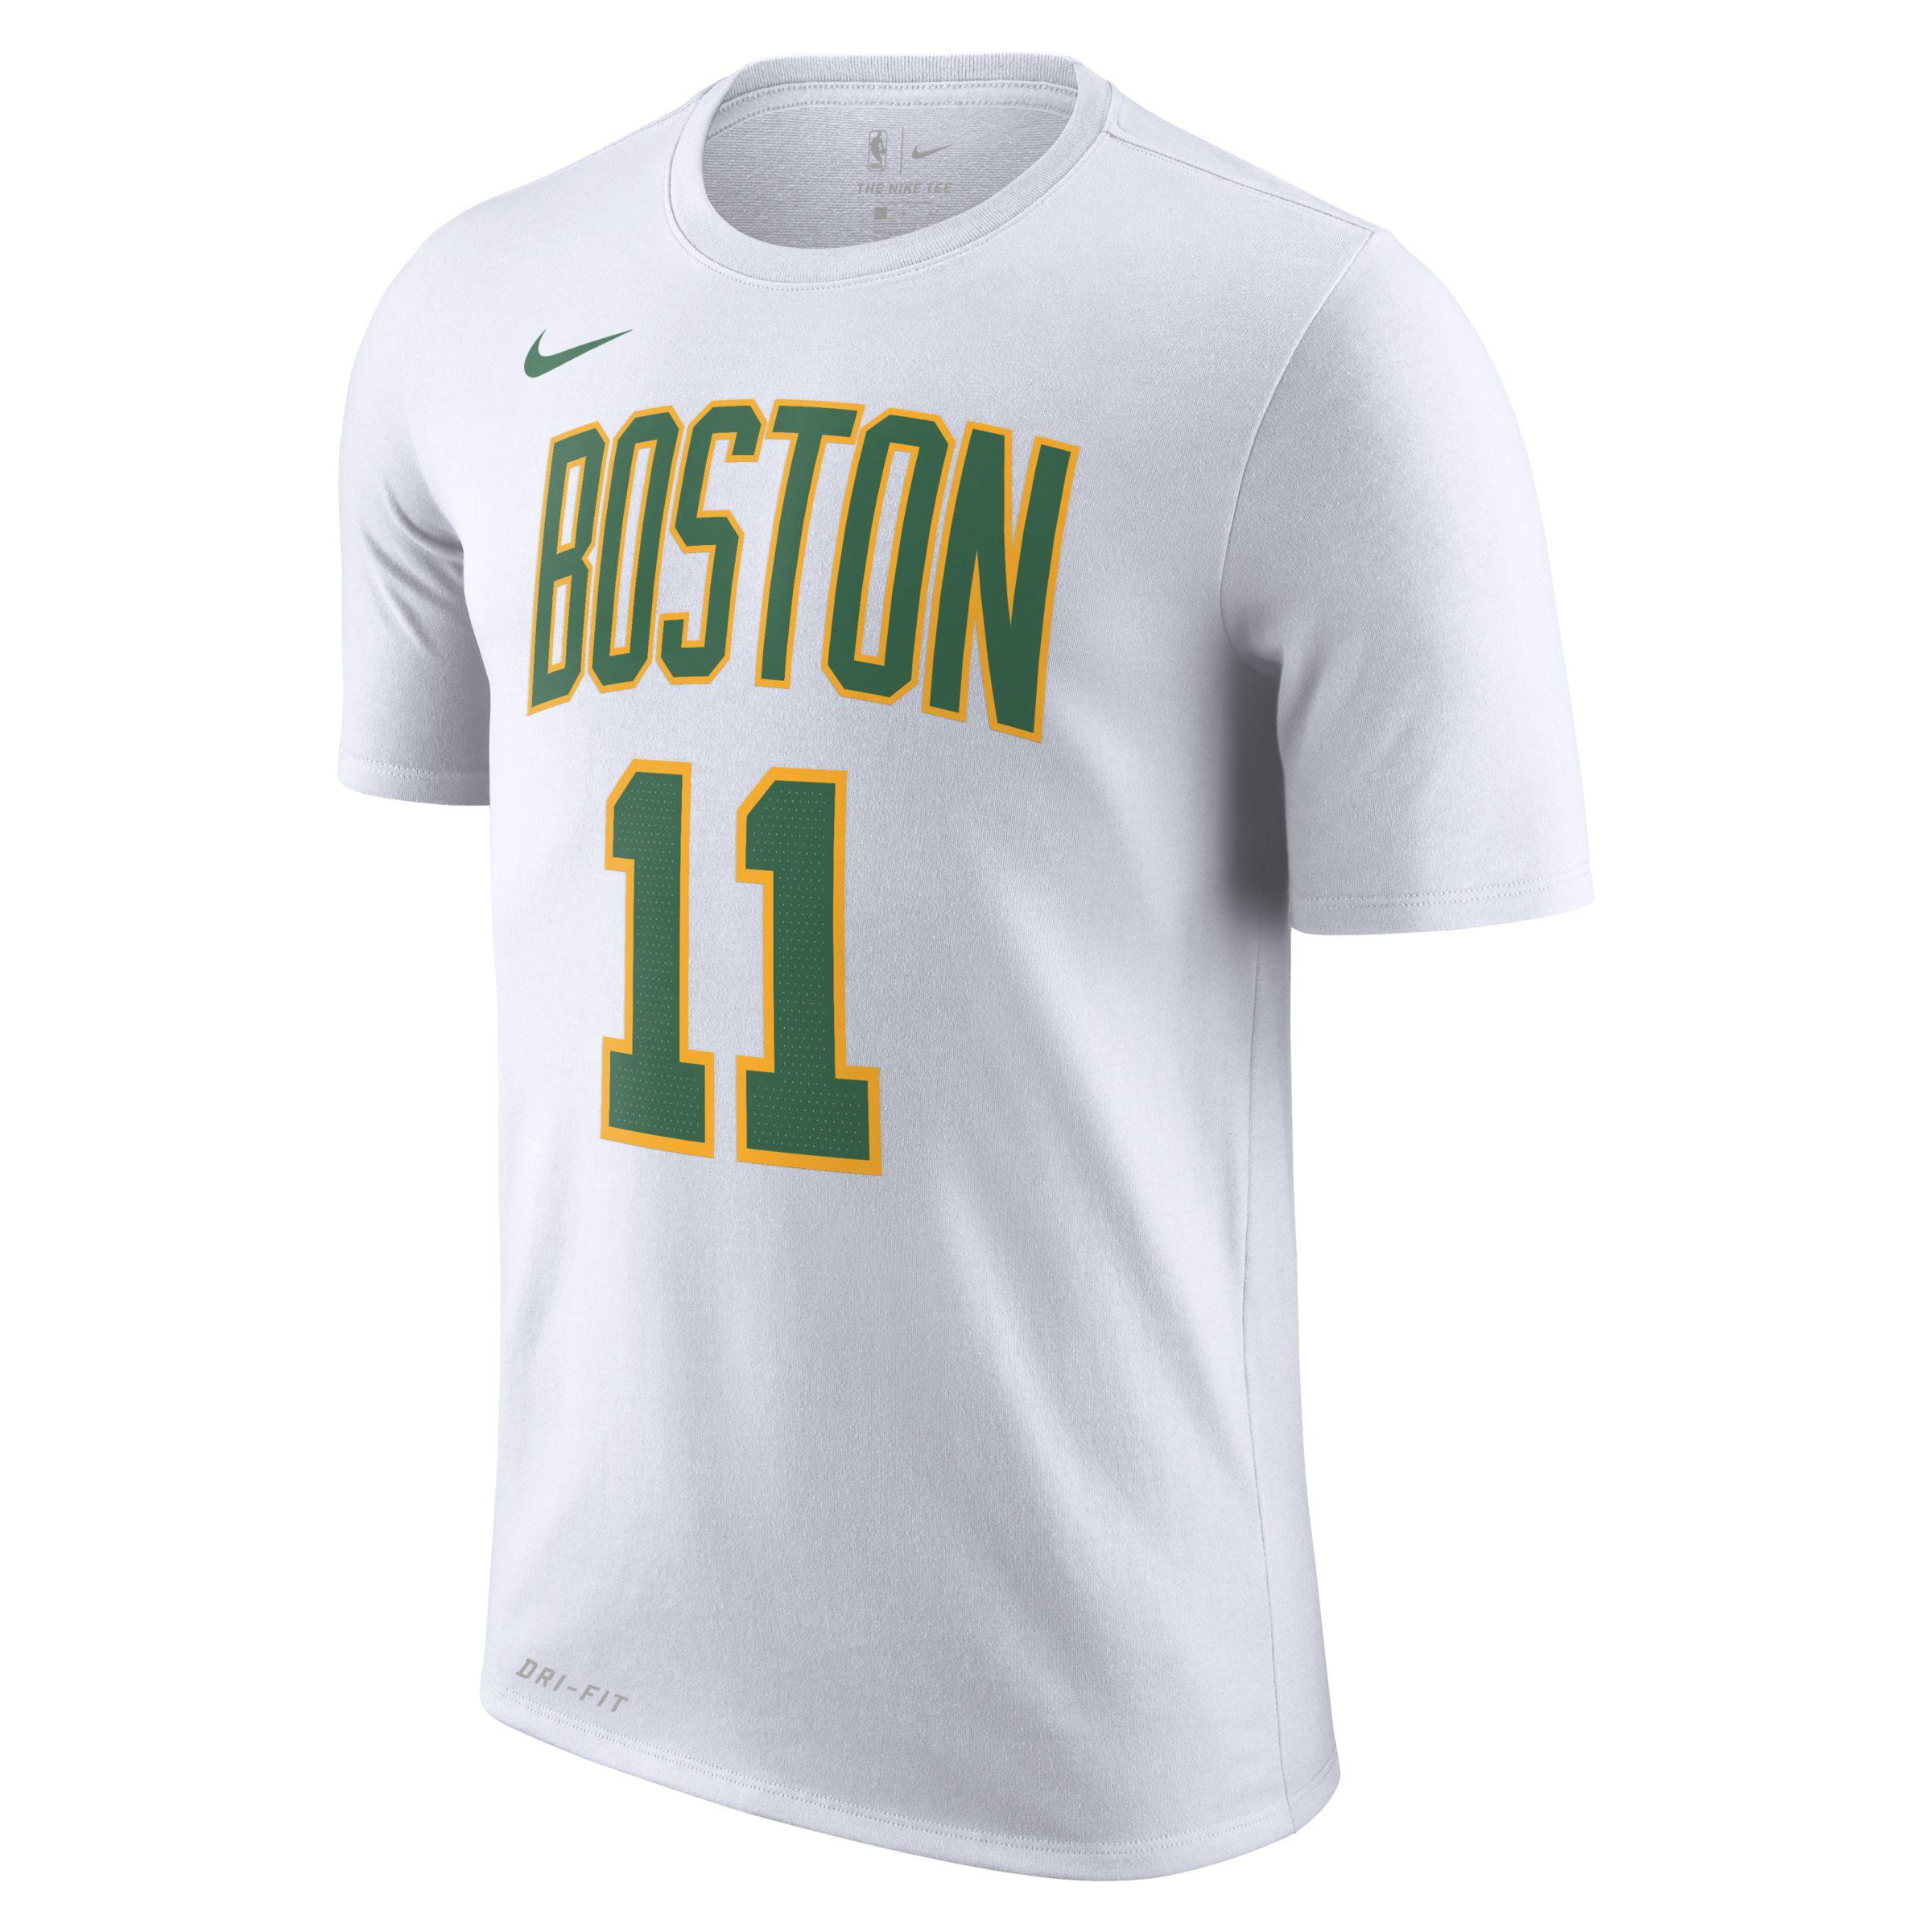 b62f5d621 Nike Kyrie Irving Boston Celtics City Player T-shirt 2018 in White ...